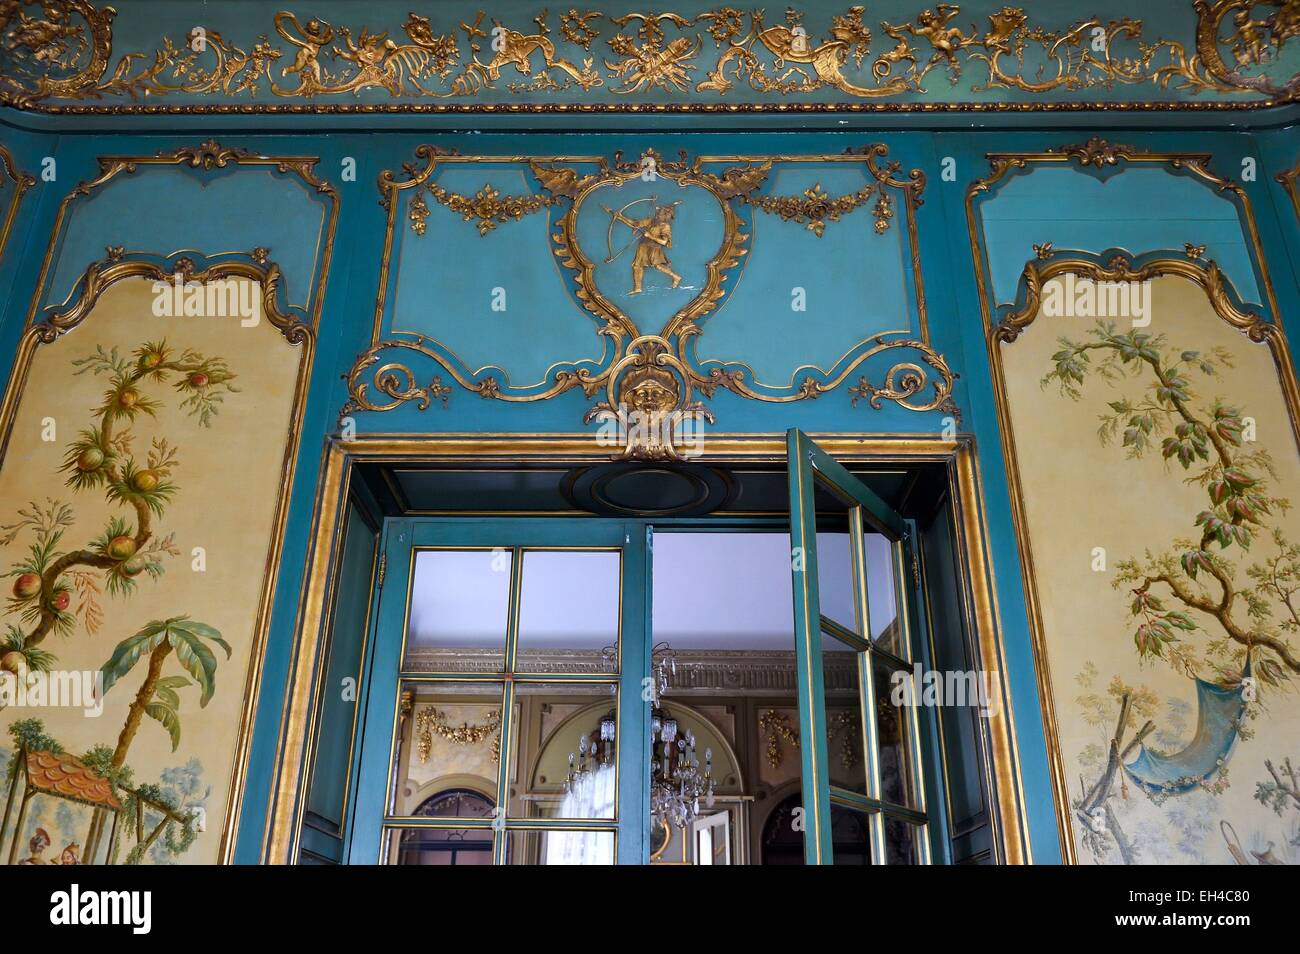 France, Alpes Maritimes, Nice, Fabron hill, the Villa des Palmiers then called Palais de Marbre (Marble Palace) - Stock Image